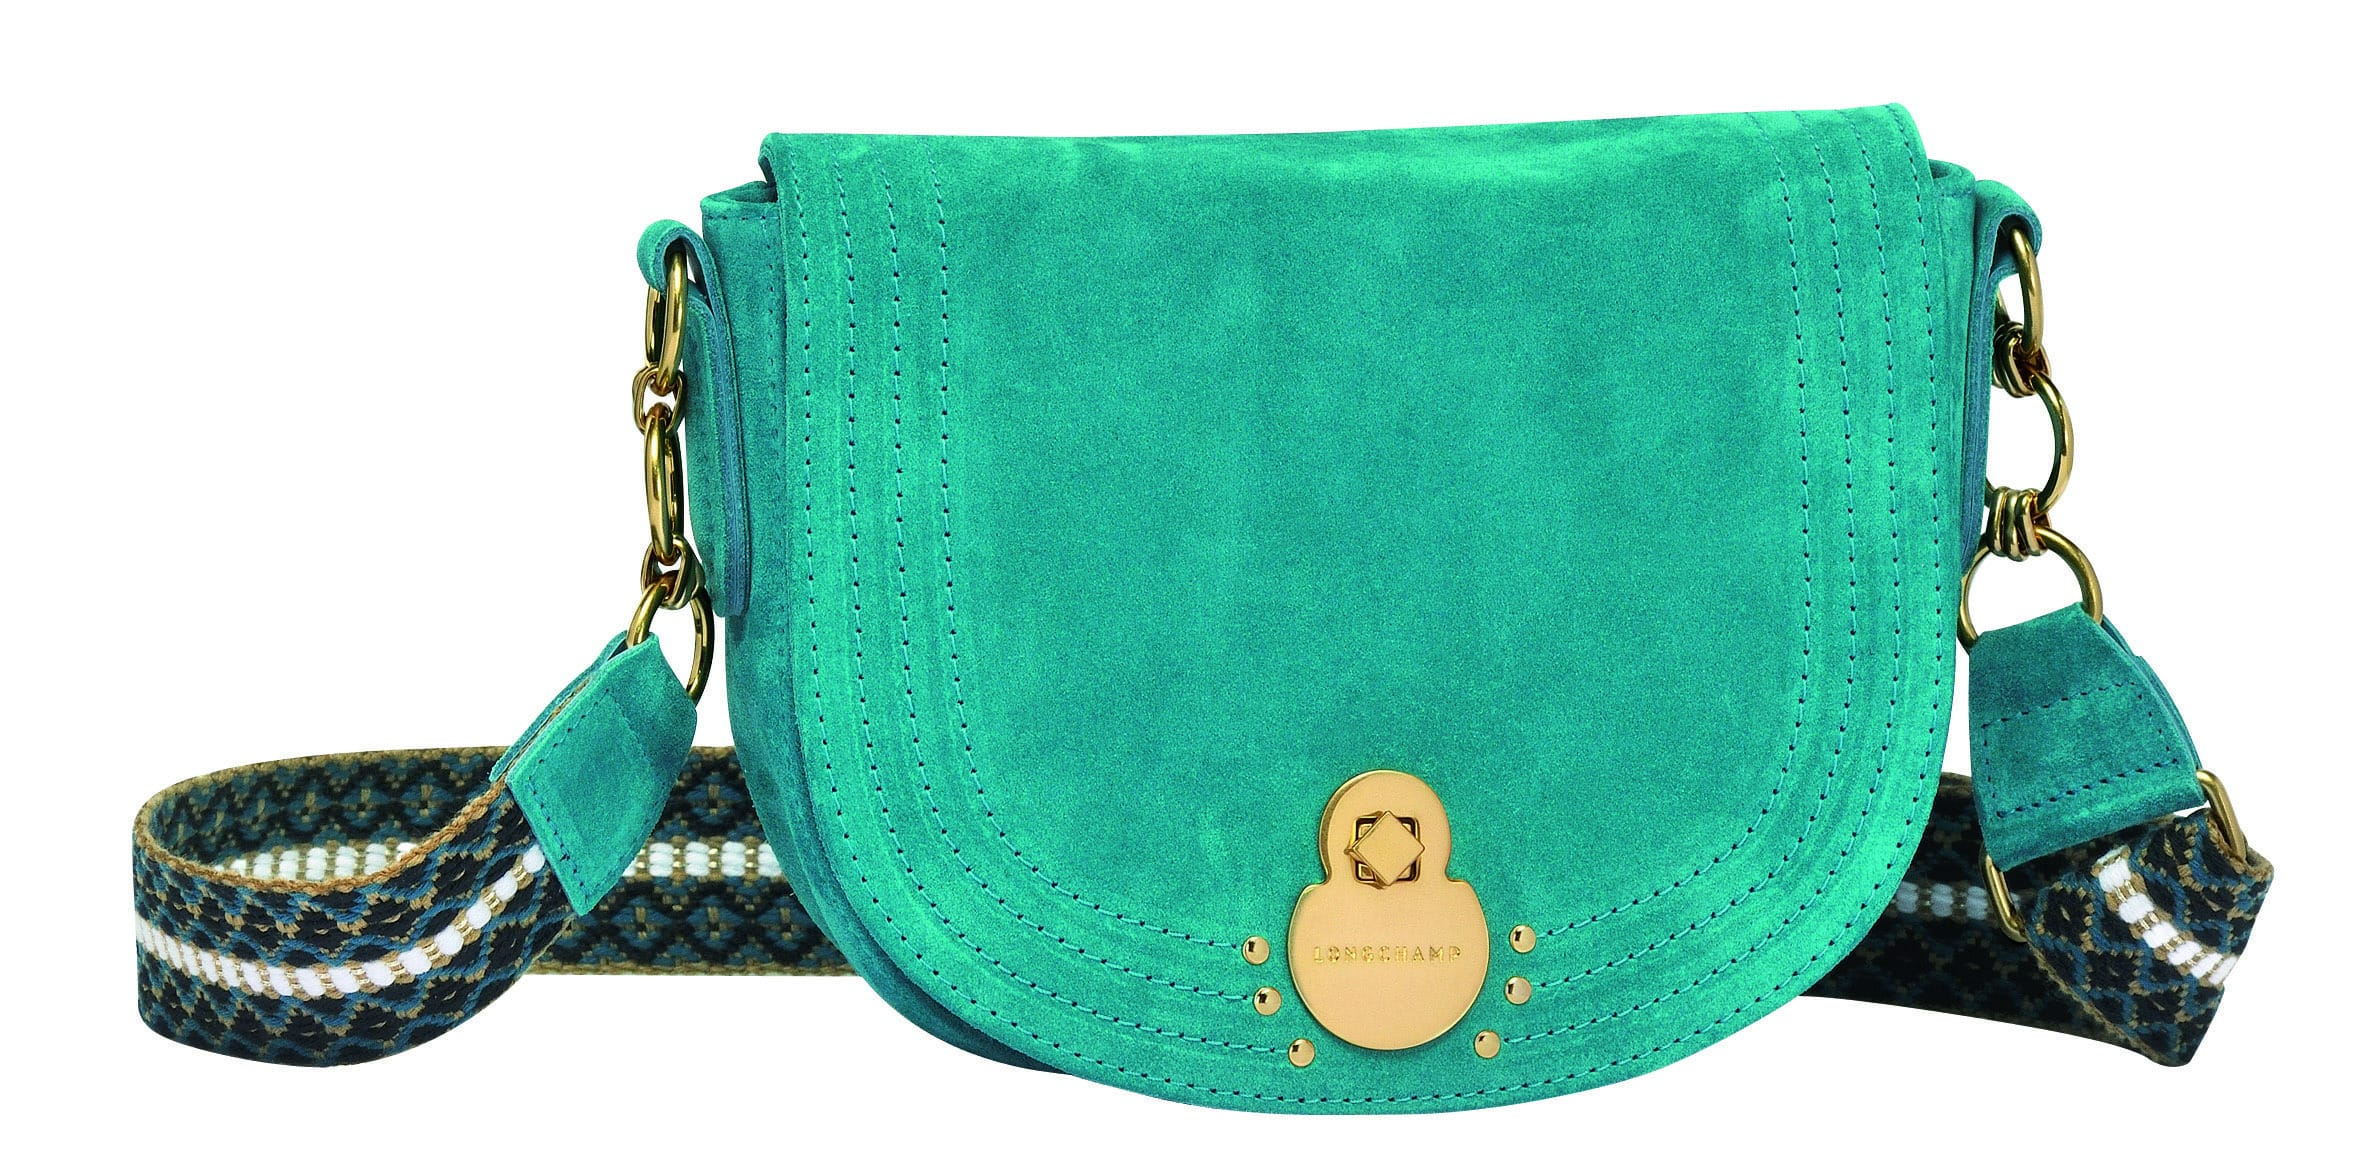 0708da52876 Longchamp bags get a spring update & we're in love with the ikat Amazone